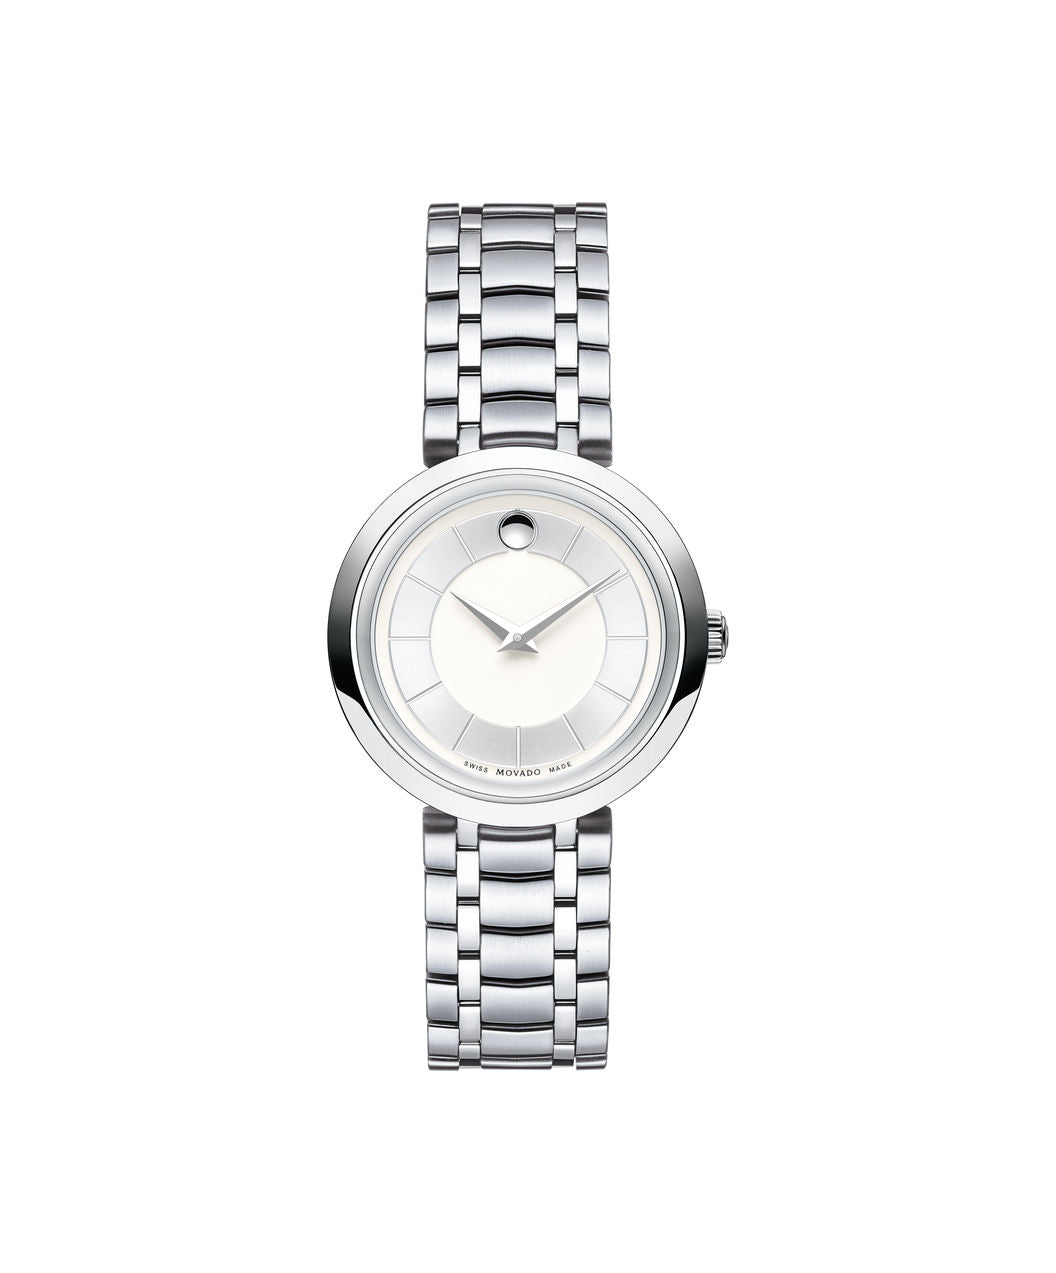 Movado Women's 1881 Quartz Watch, 28 mm Stainless Steel 0607098 - Arnik Jewellers